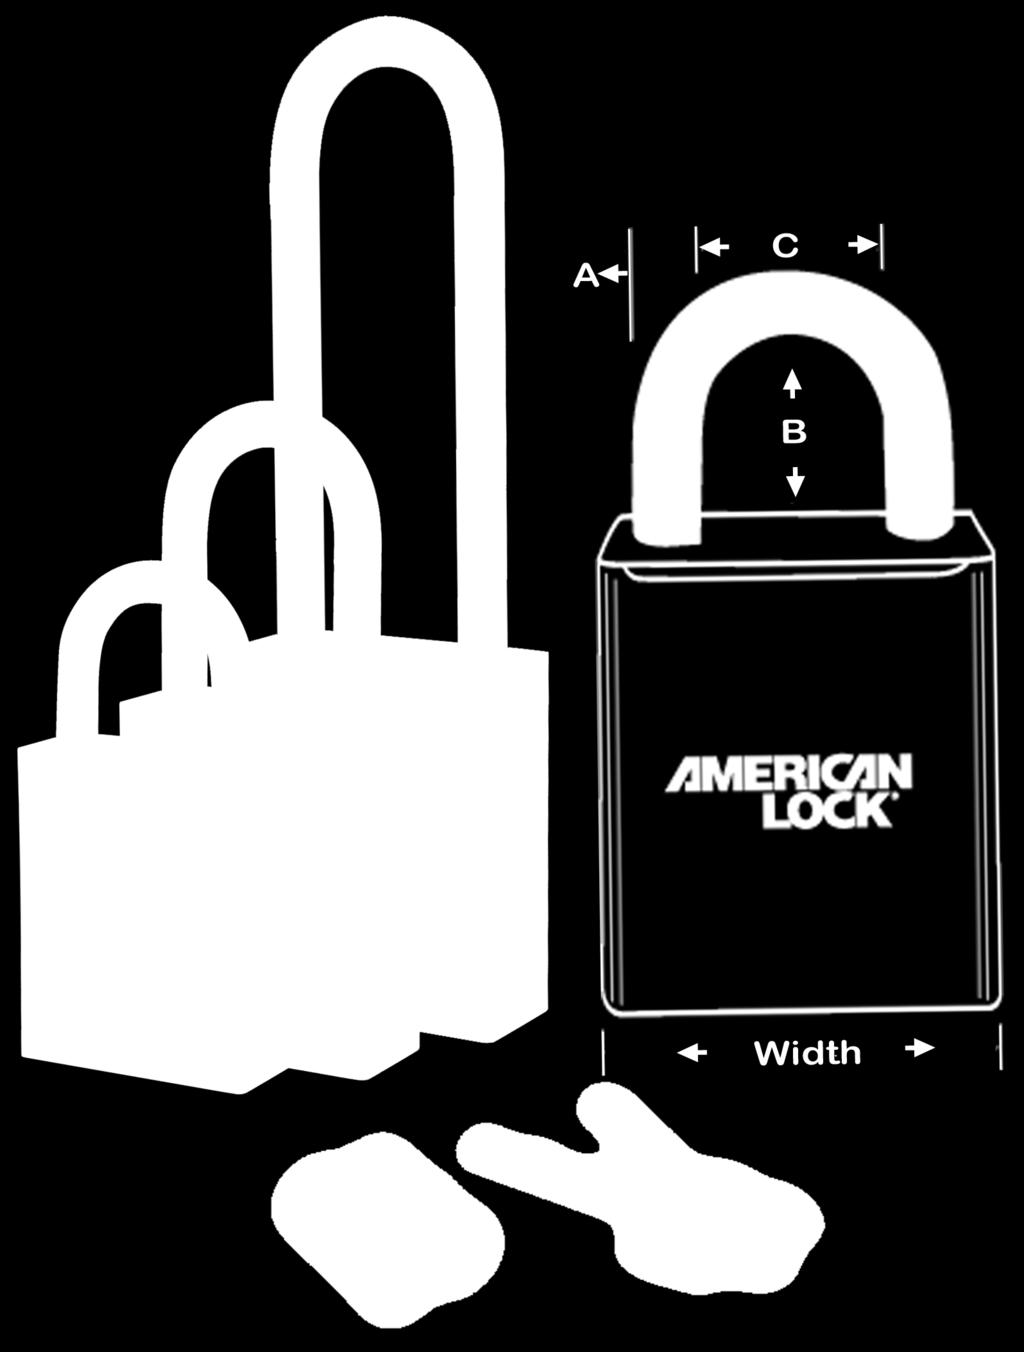 expand your current key system Cores may be ordered both as part of a complete American Lock IC padlock assembly, or separately, keyed up and ready to plug into your system Padlock bodies will also